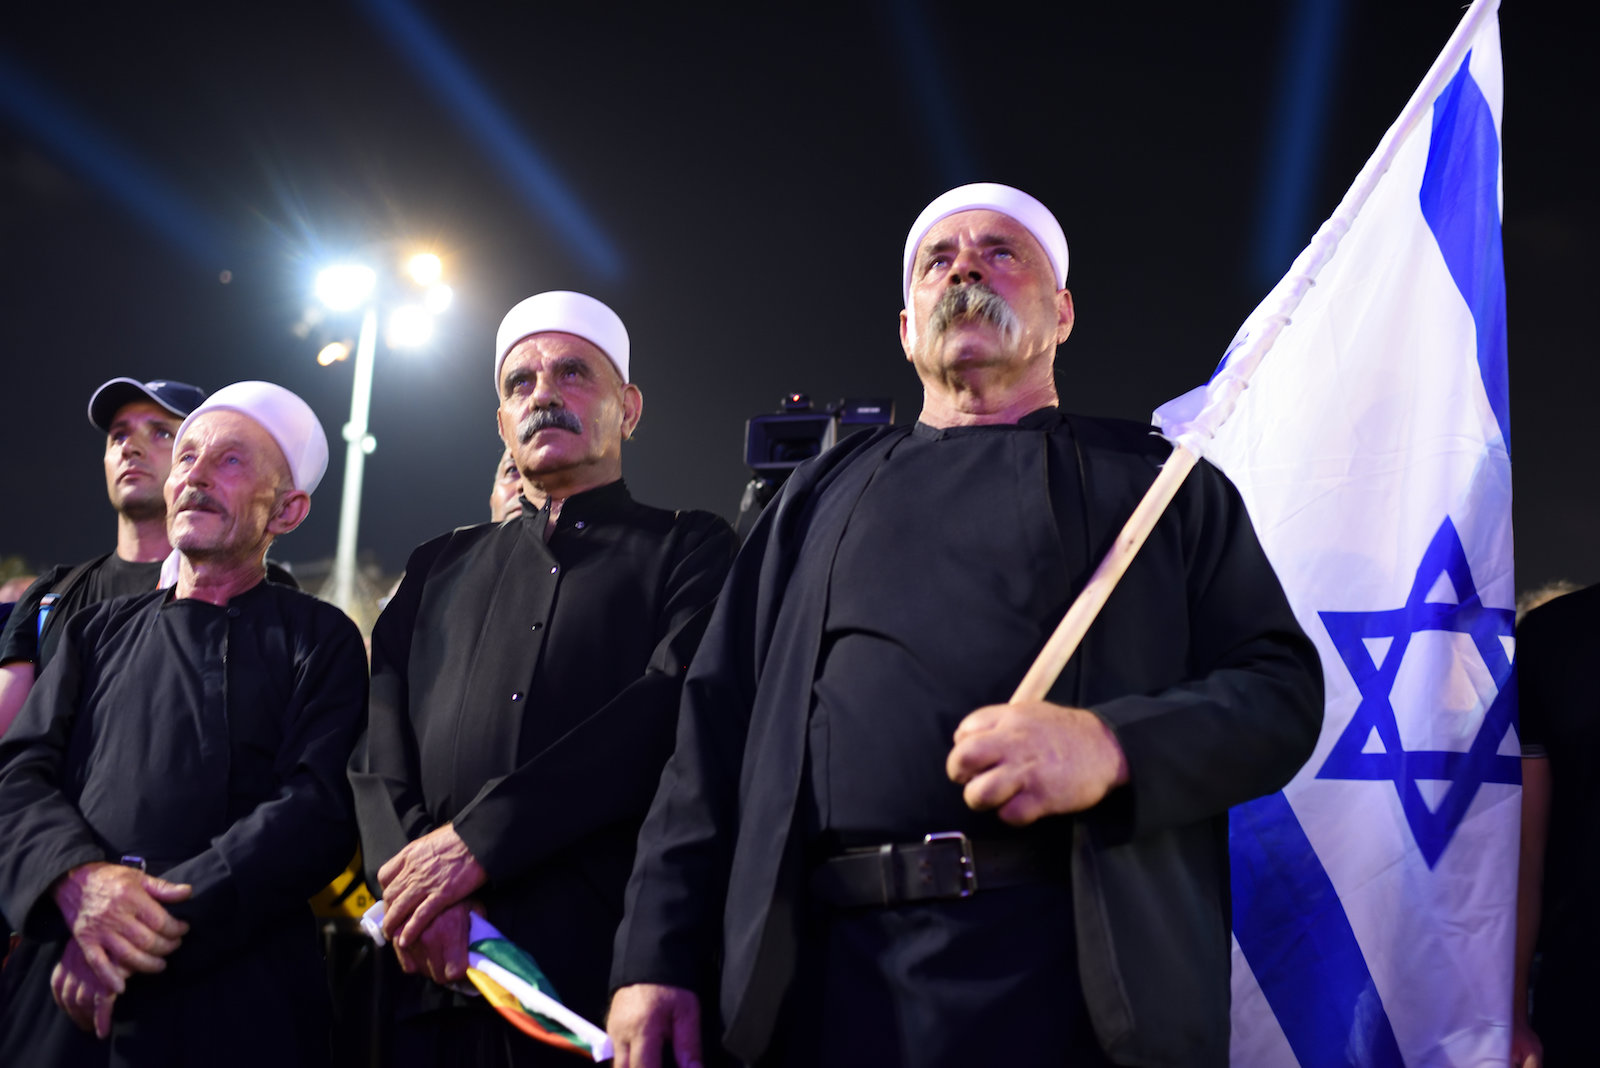 When Jews and Druze stood side by side | Shira Pasternak Be'eri